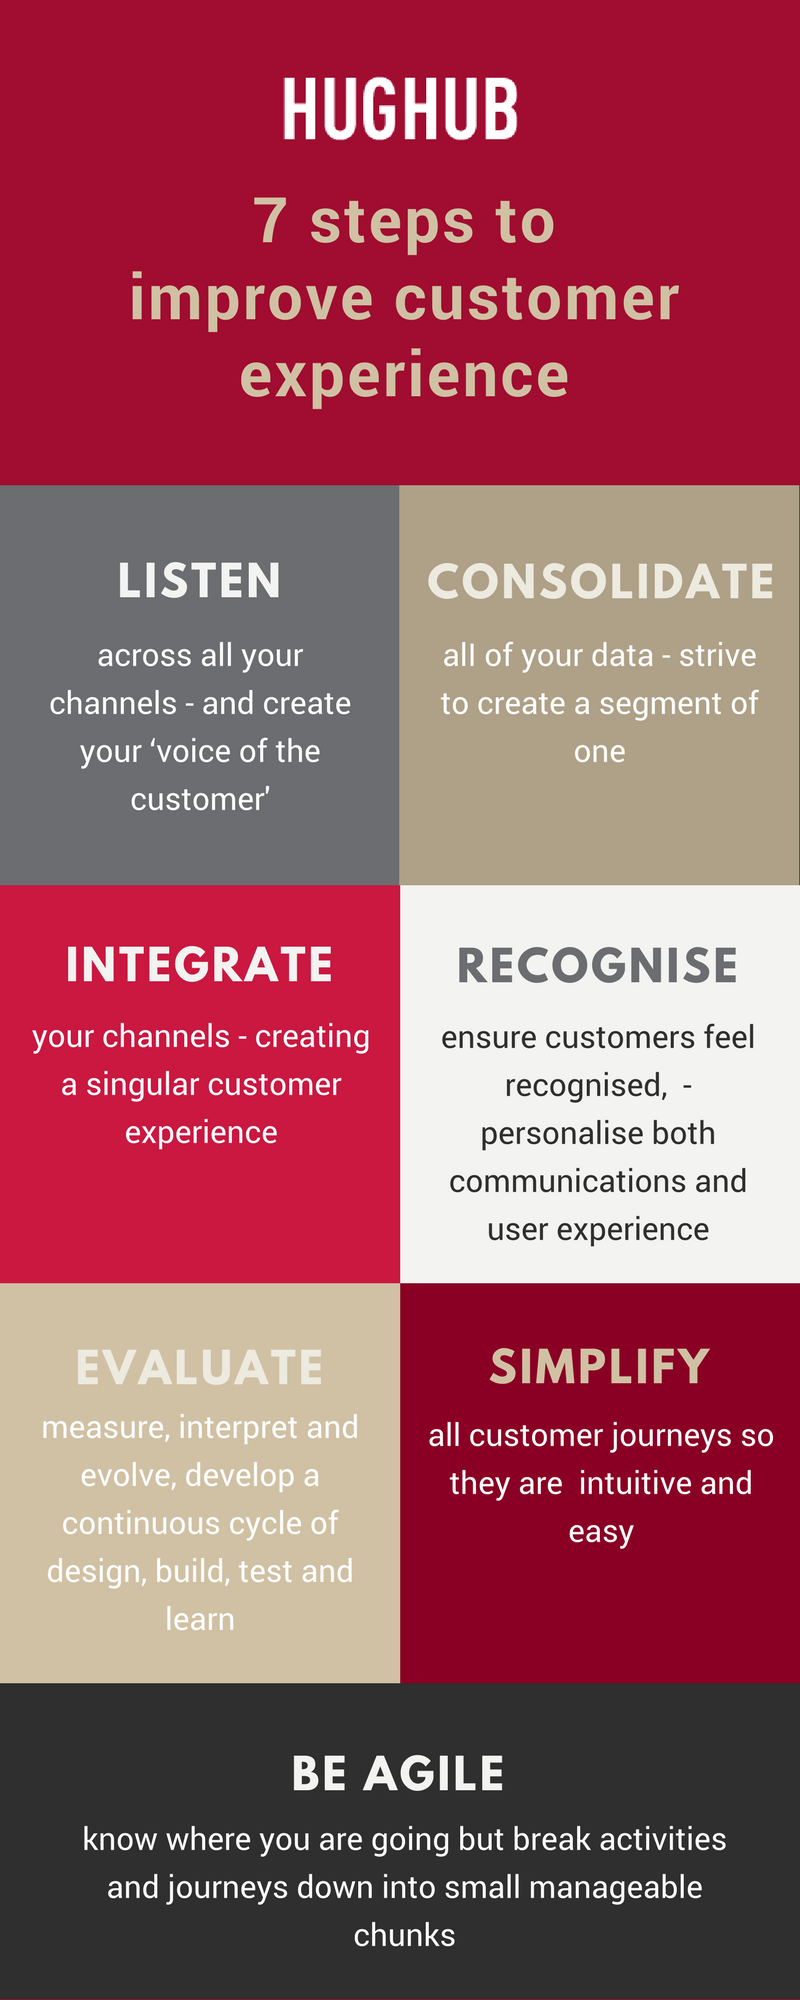 7 steps to improve customer experience infographic